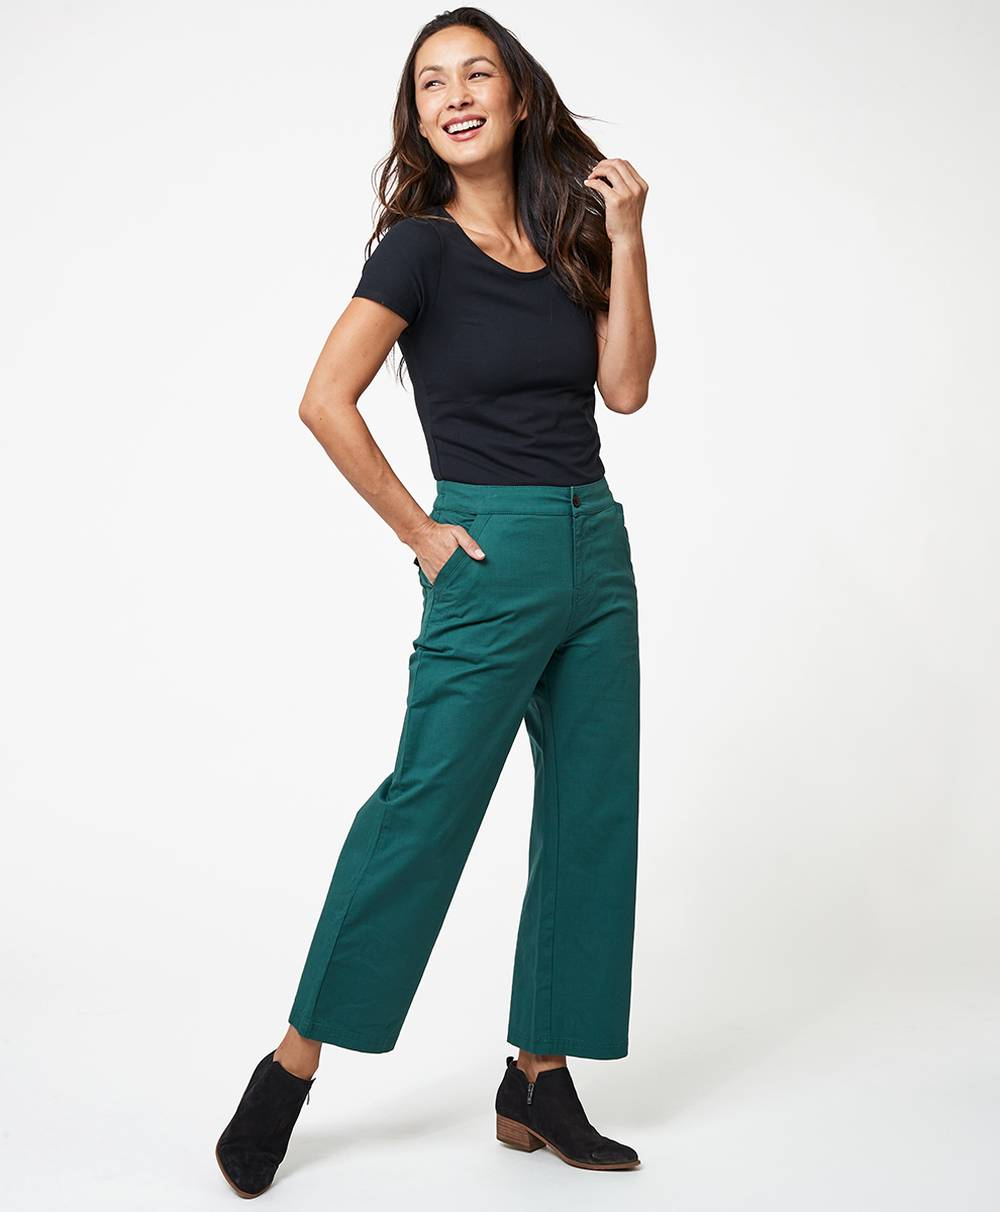 pact pants investment clothing pieces